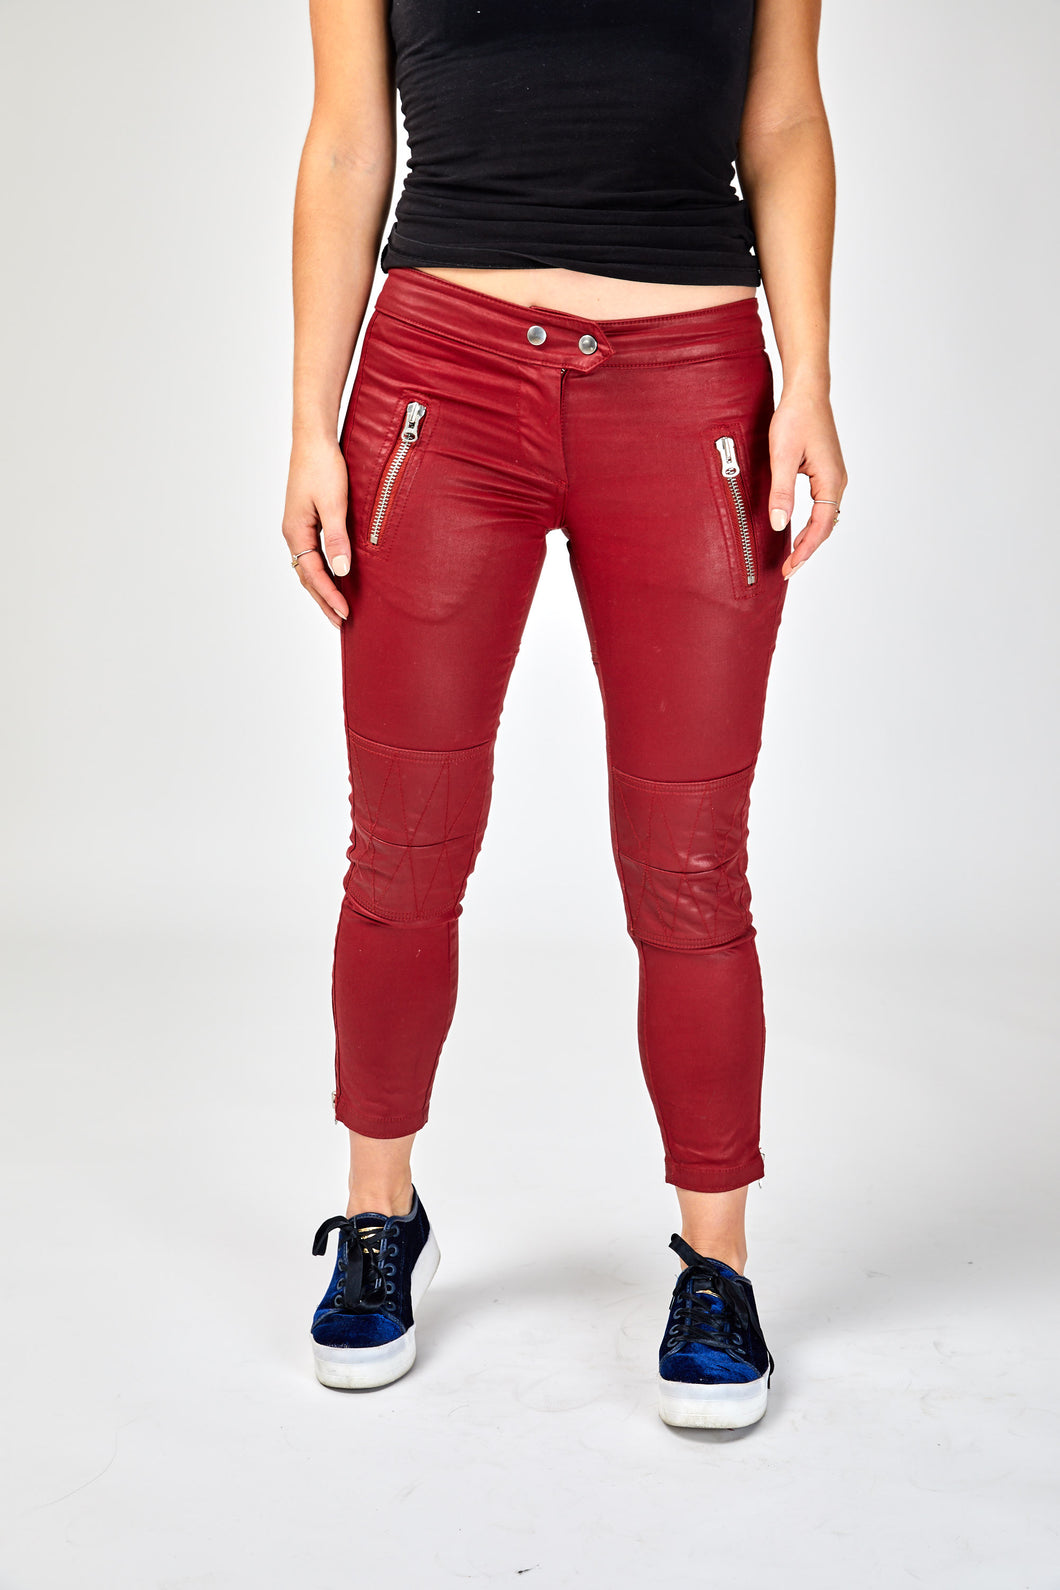 Isabel Marant Leather Trousers